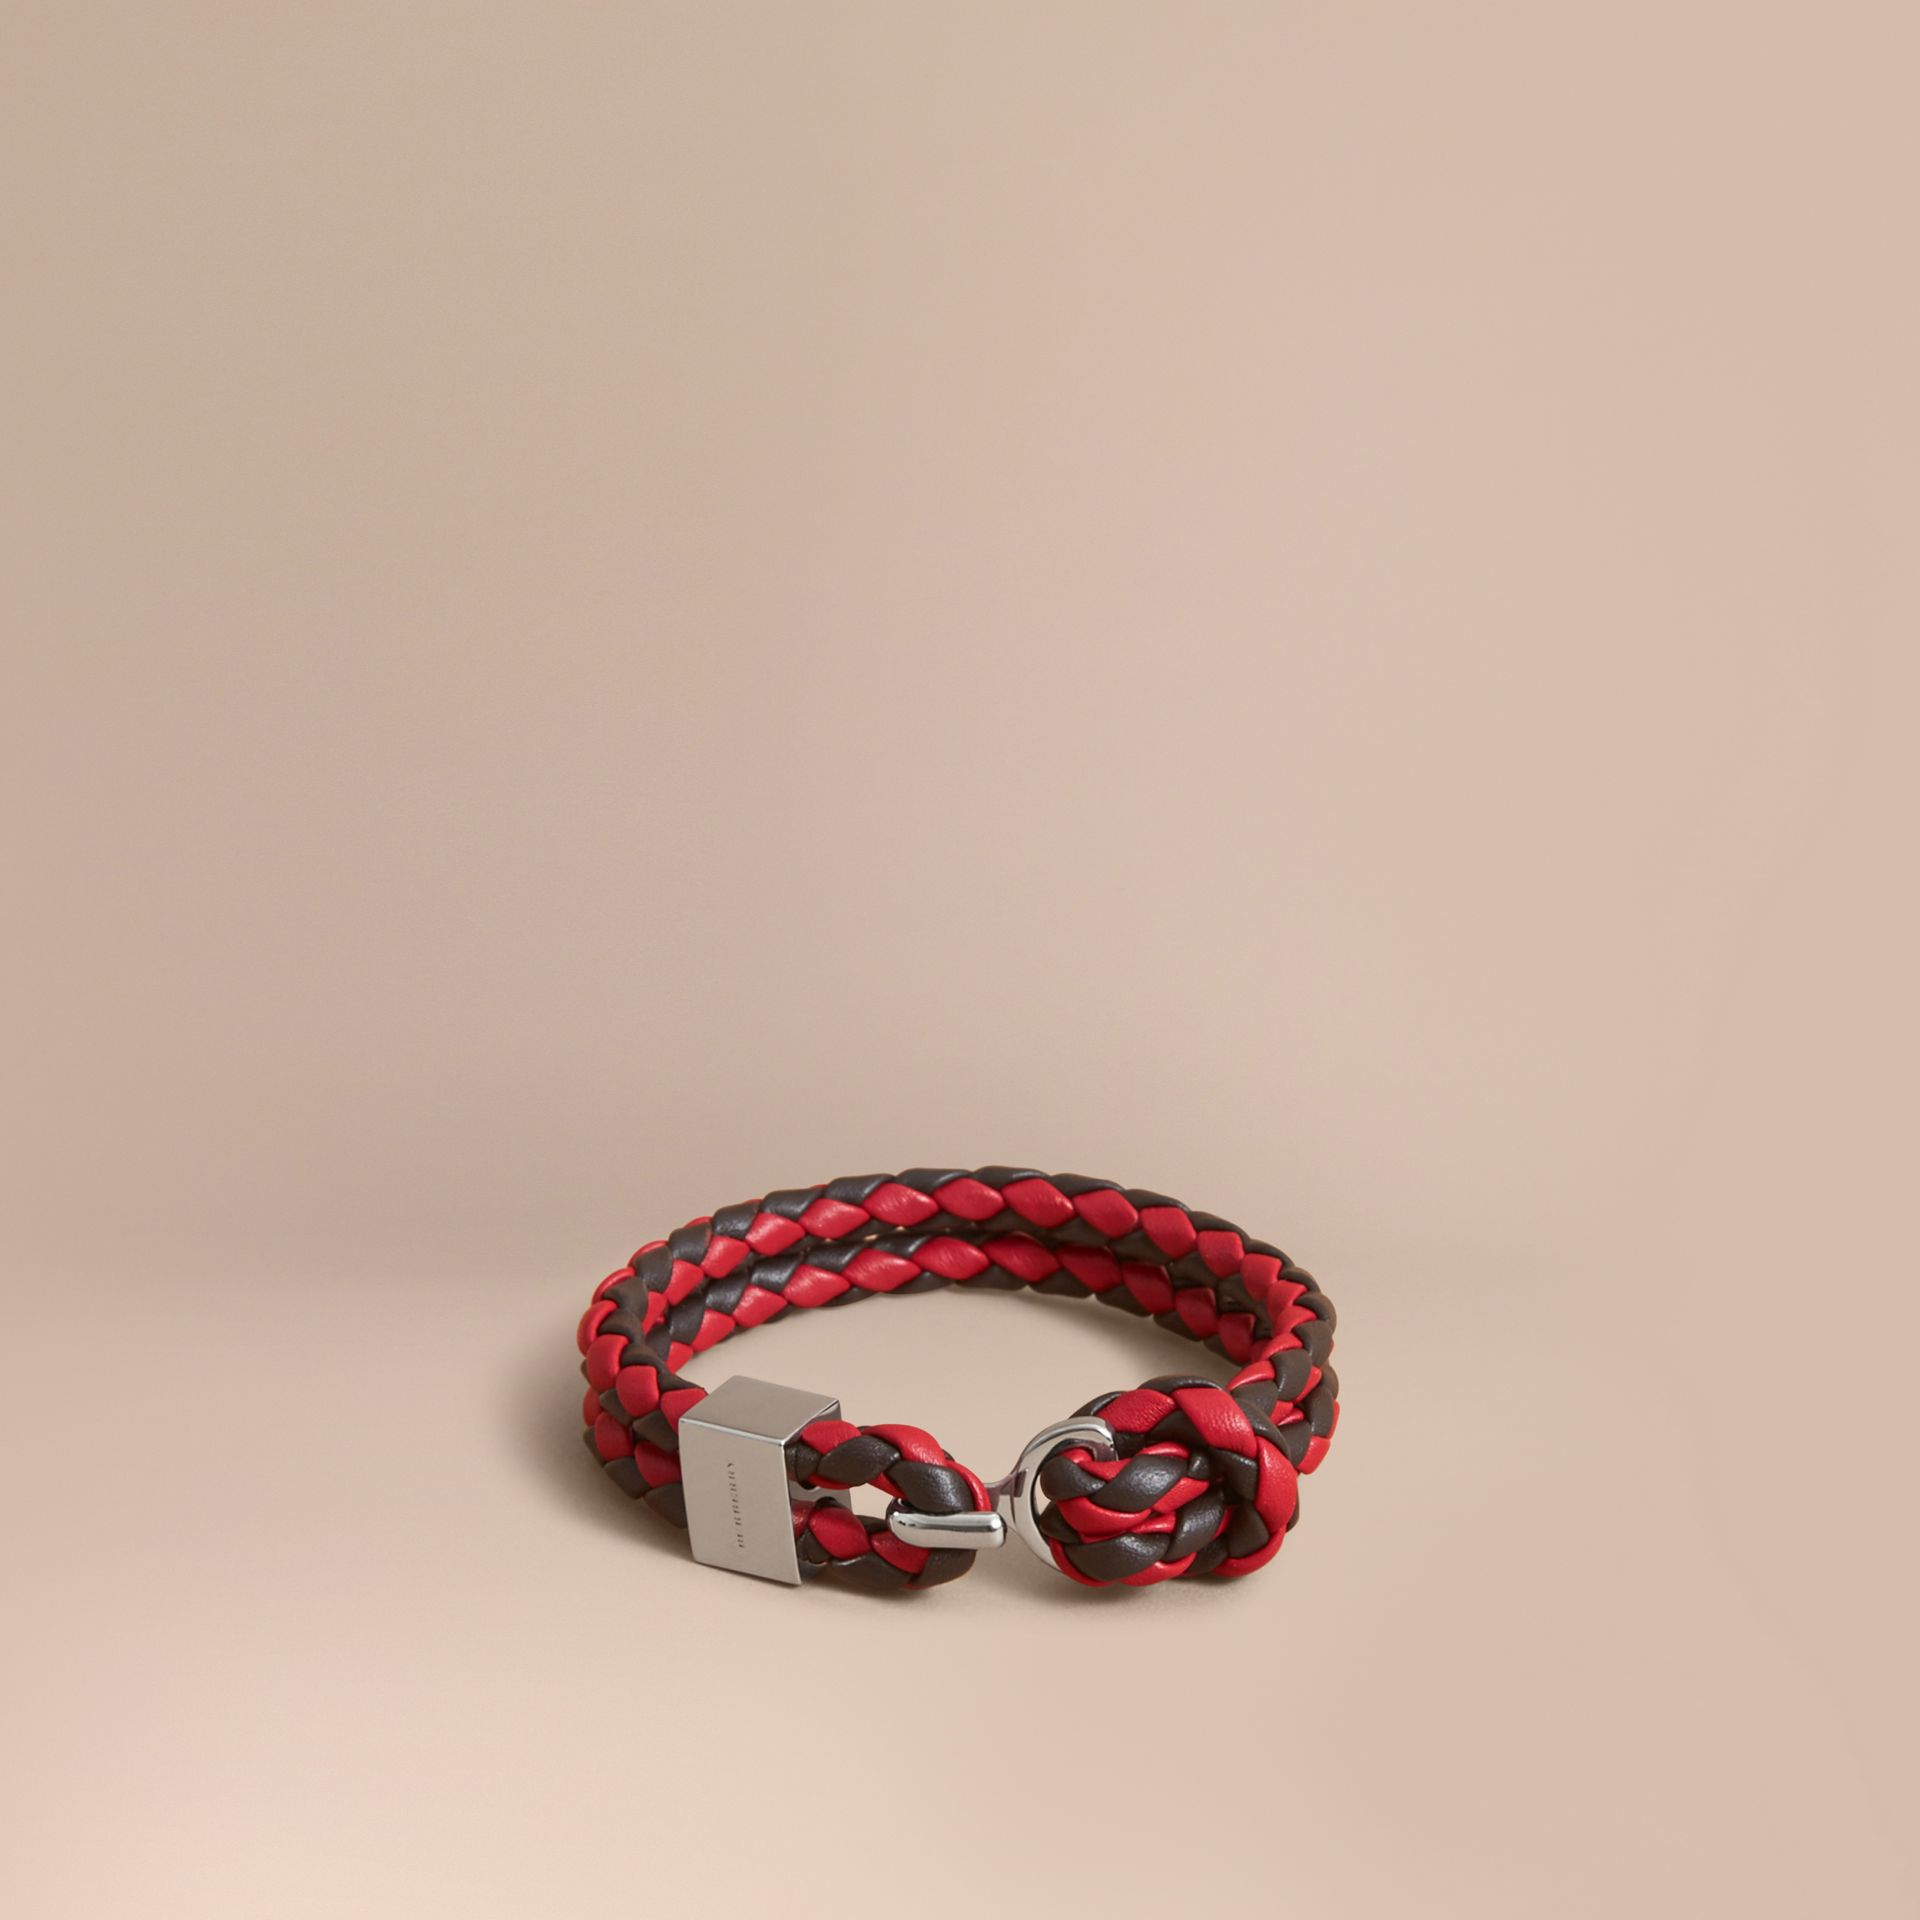 Two-tone Braided Leather Bracelet in Peppercorn/coral Red - Men | Burberry - gallery image 1